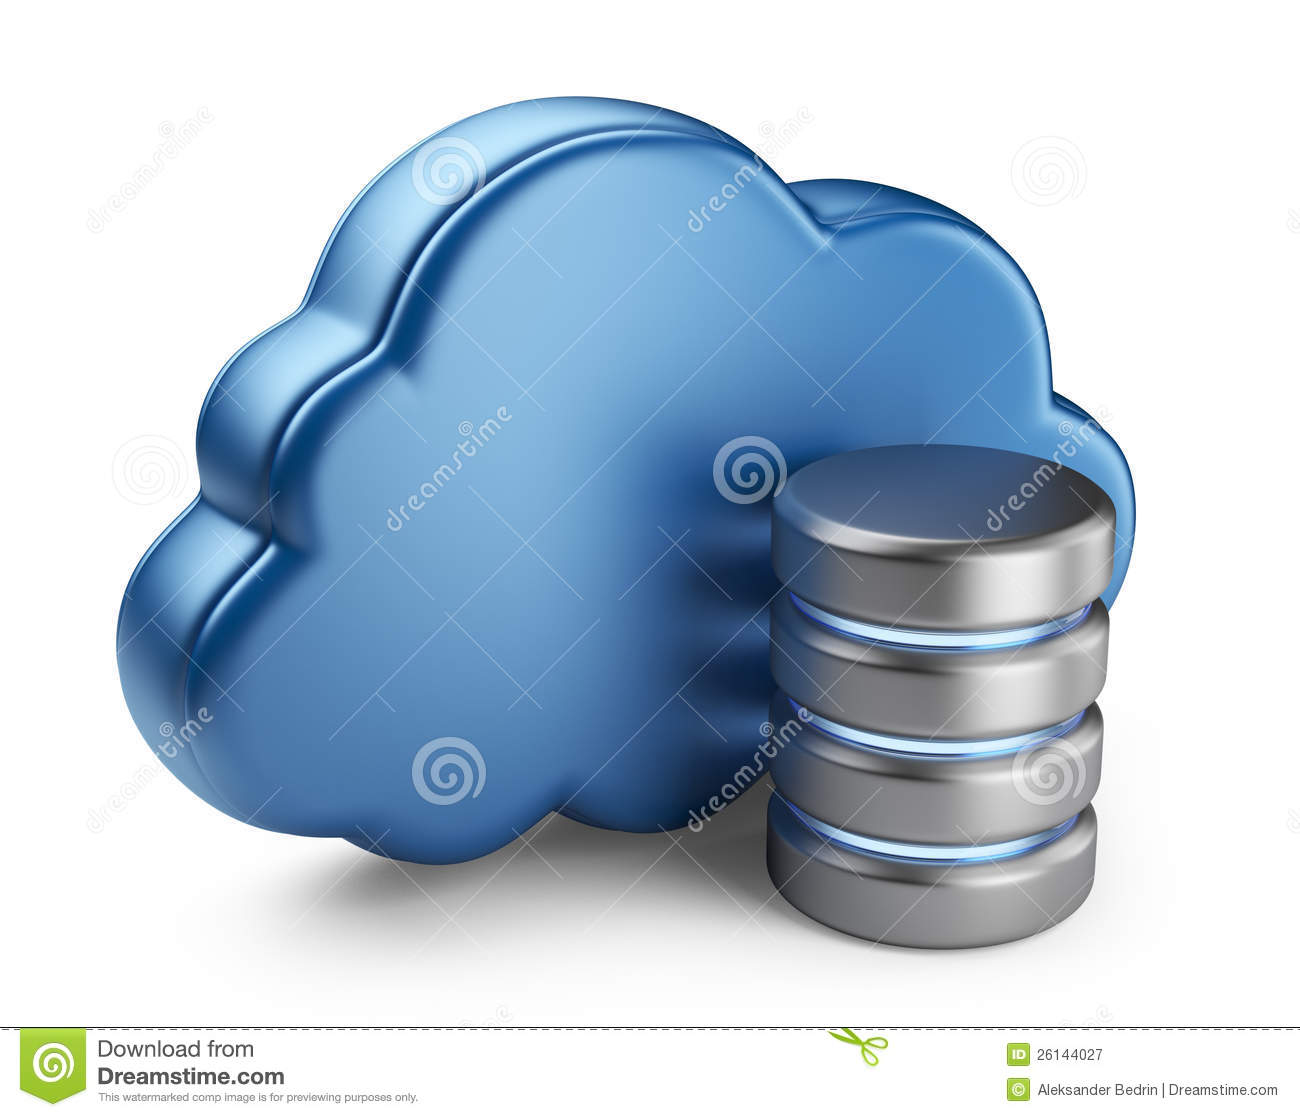 Royalty Free Stock Photography: Cloud computing and database. 3D icon ...